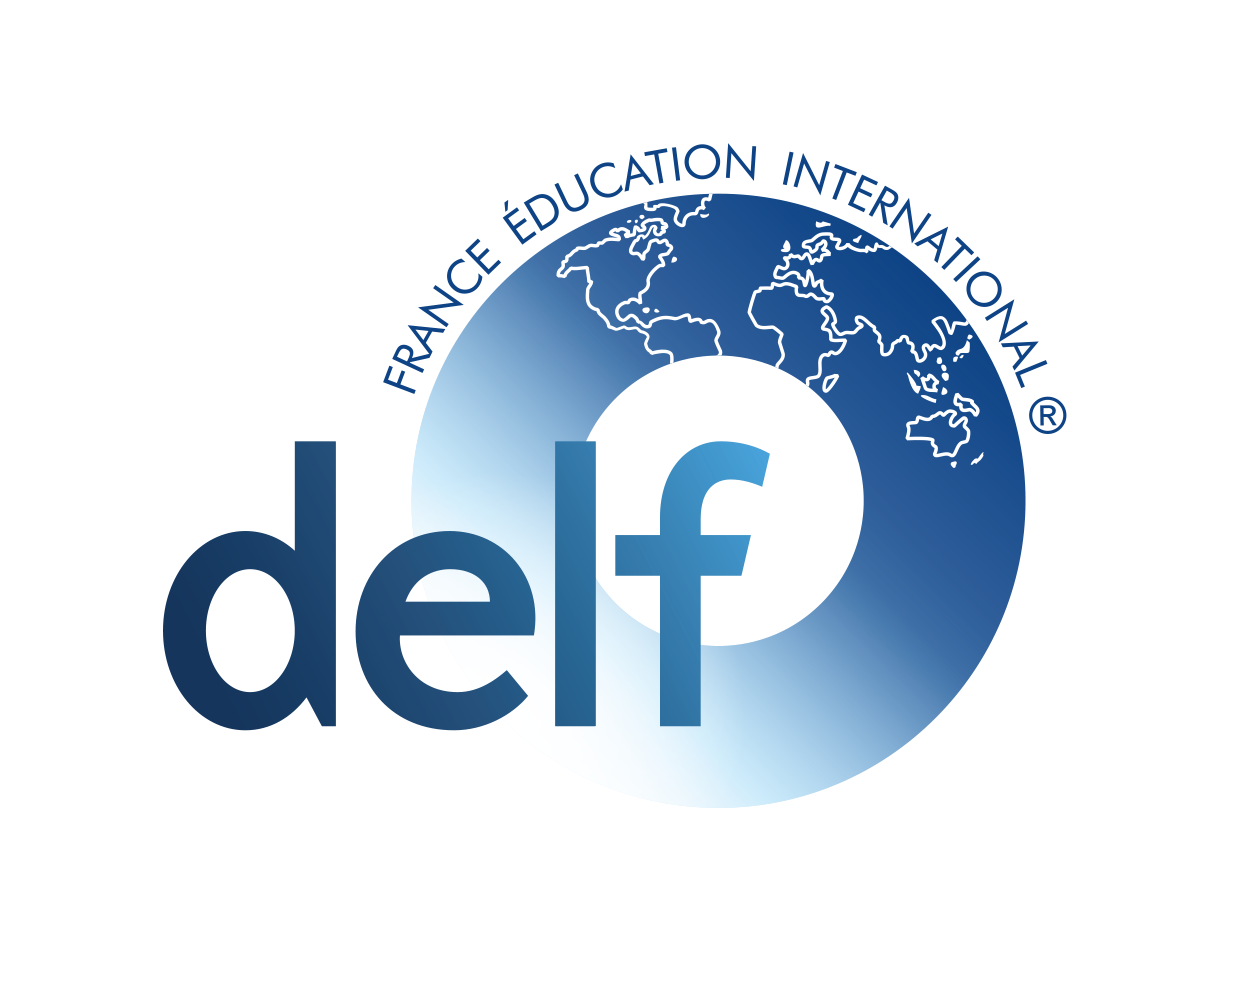 Certificeret DELF center